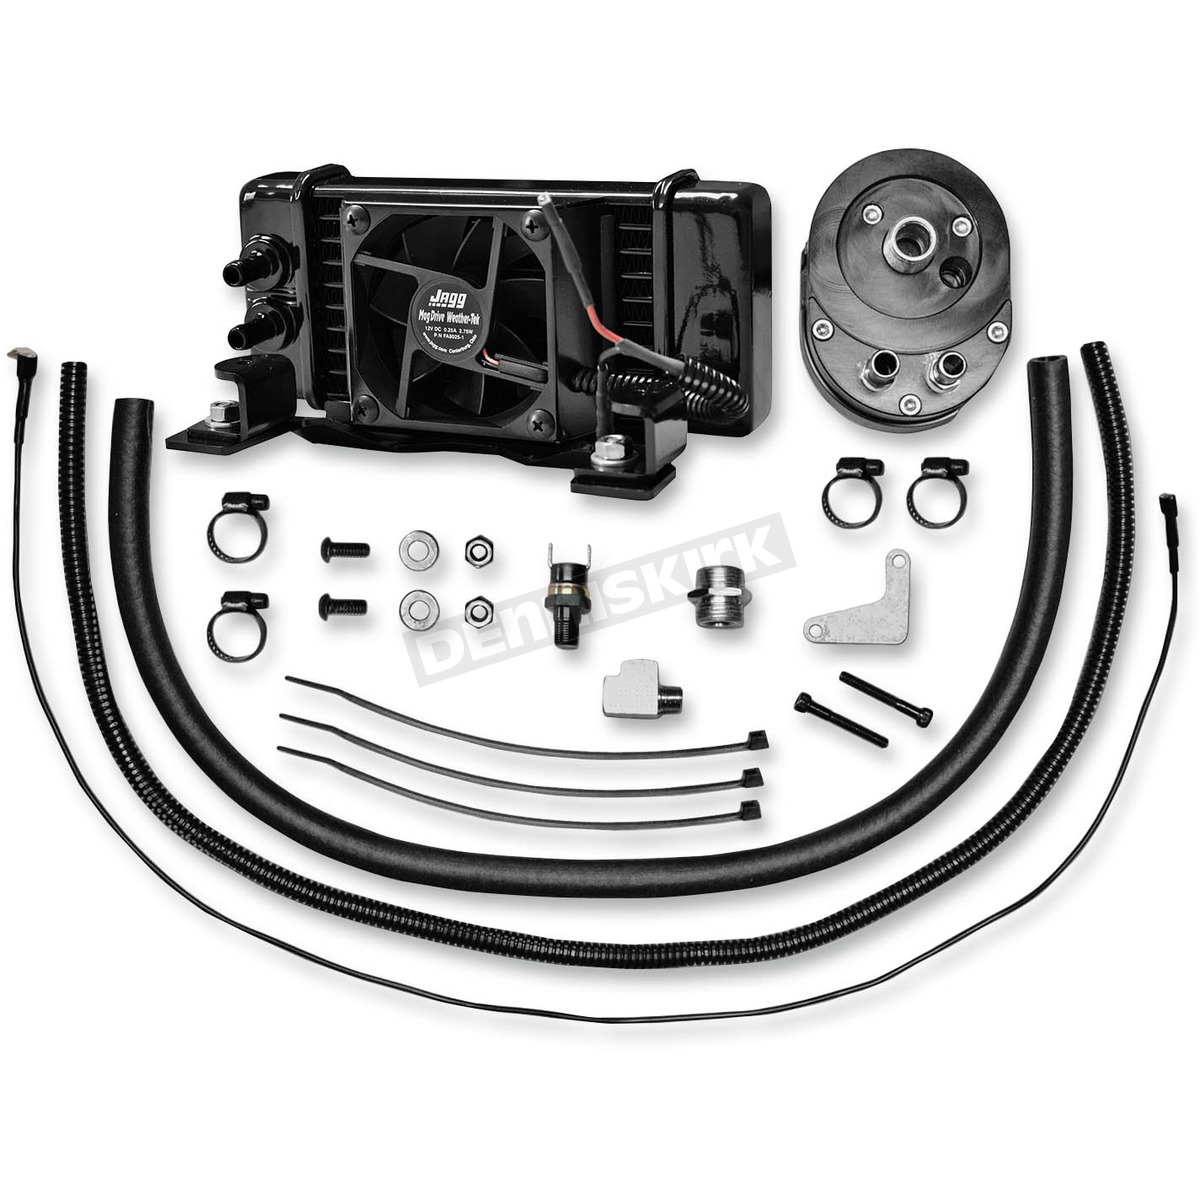 Jagg Low Mount Fan Assisted Oil Cooler Kit